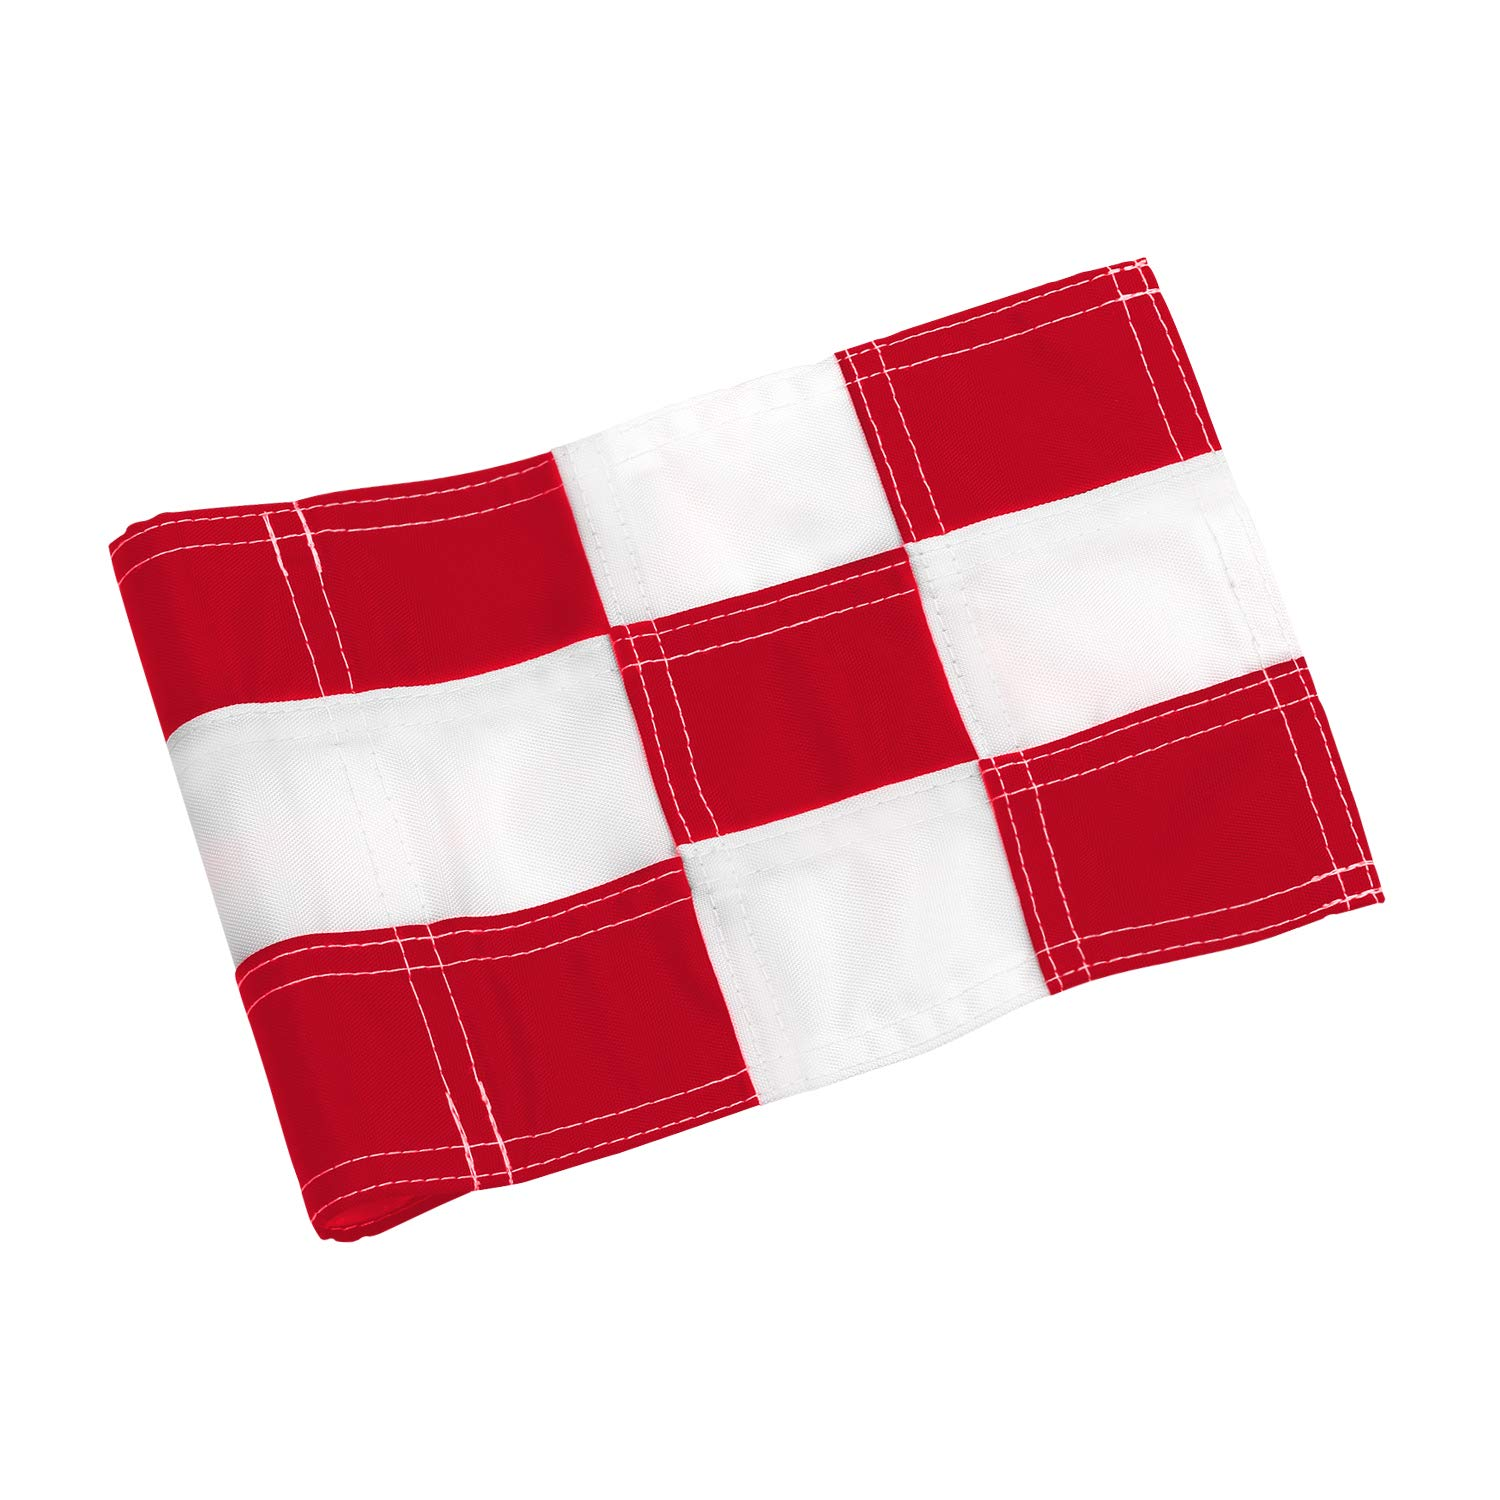 KINGTOP Checkered Golf Flag with Plastic Insert, Putting Green Flags for Yard, Indoor/Outdoor, Garden Pin Flags, 420D Premium Nylon Flag, 8'' L x 6'' H, White&Red by KINGTOP